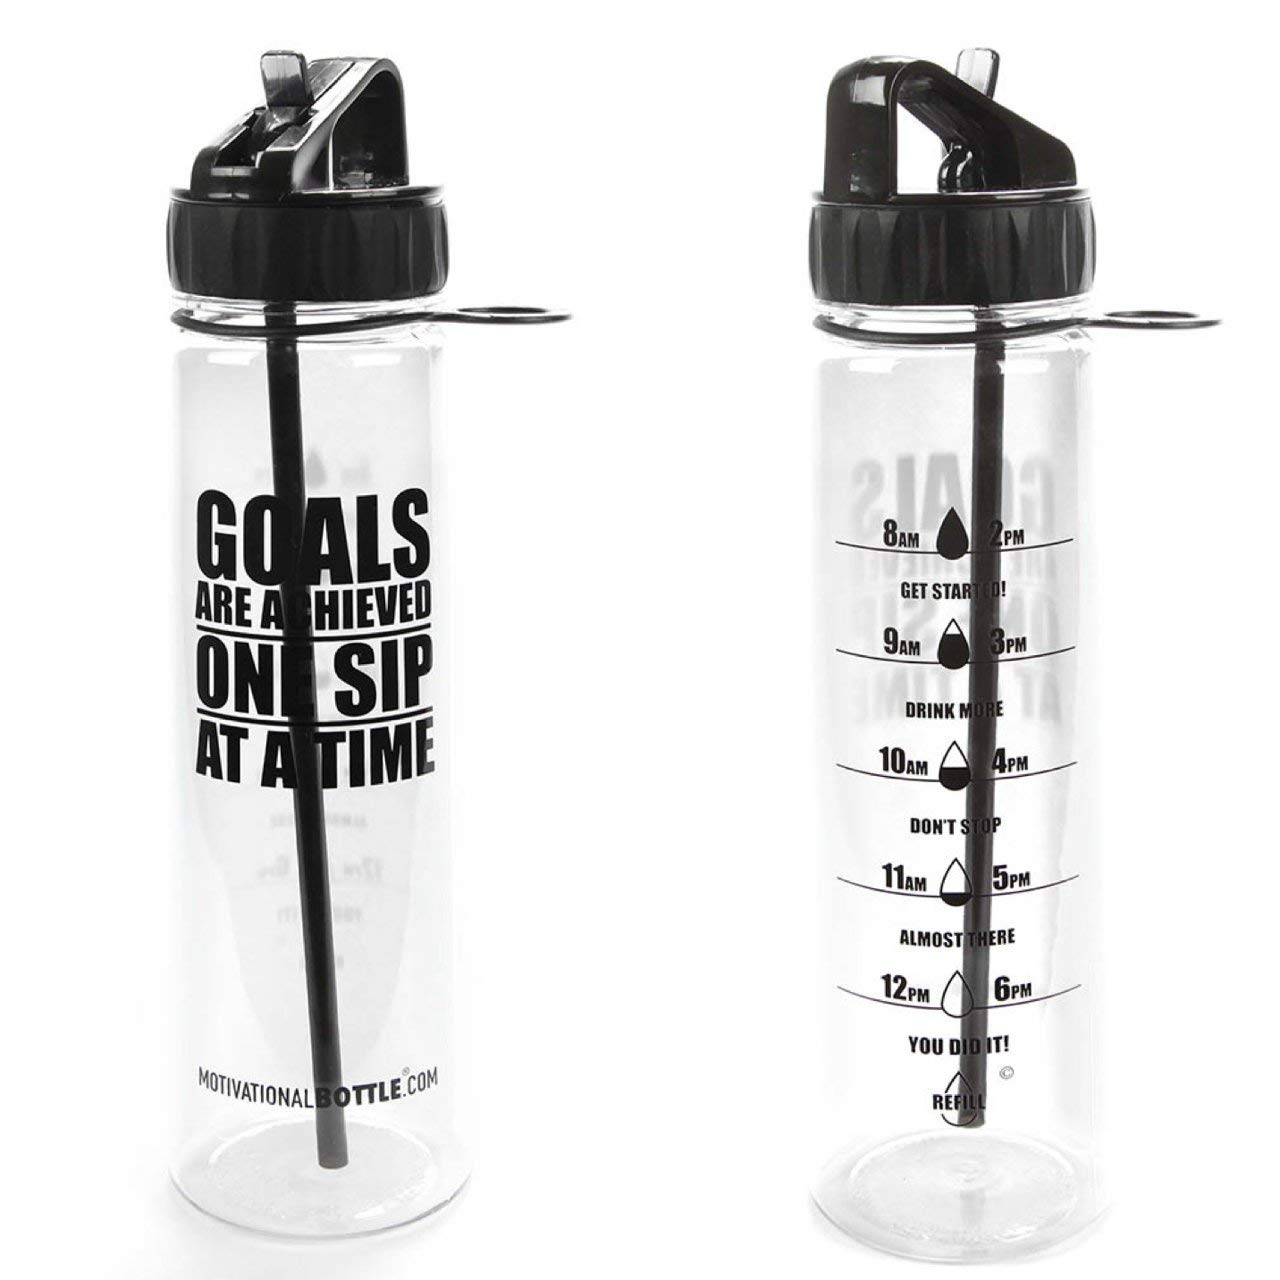 019ccb9964 Get Quotations · 30oz Motivational Bottle Fitness Workout Sports Water  Bottle with Unique Timeline | Measurements | Goal Marked